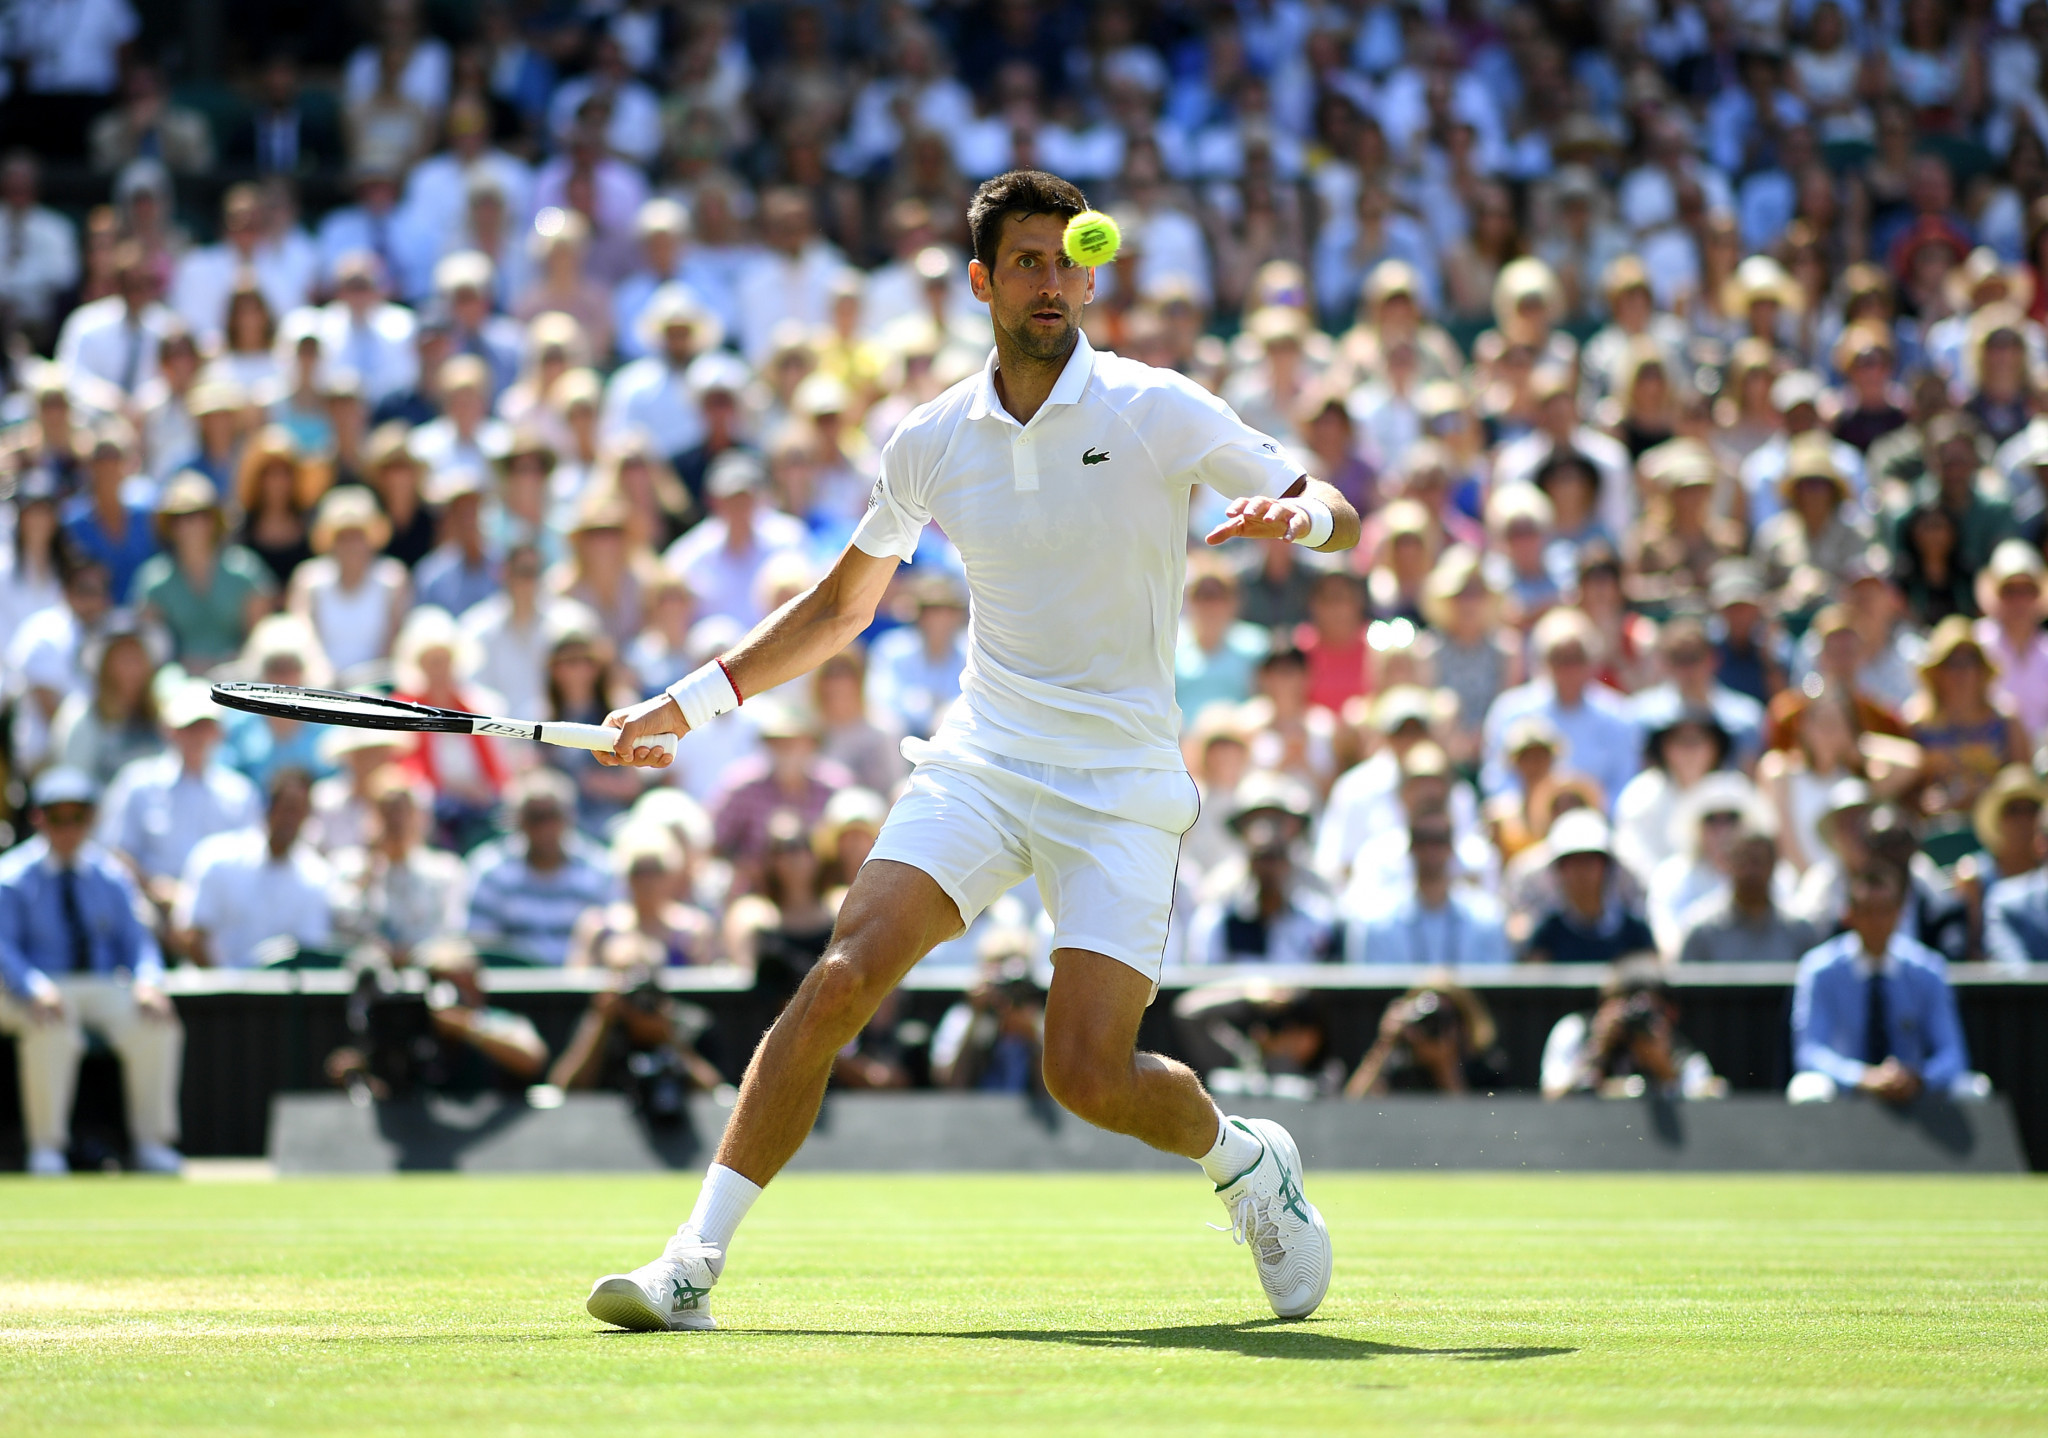 Djokovic threatened to run away with his semi-final against Roberto Bautista Agut ©Getty Images